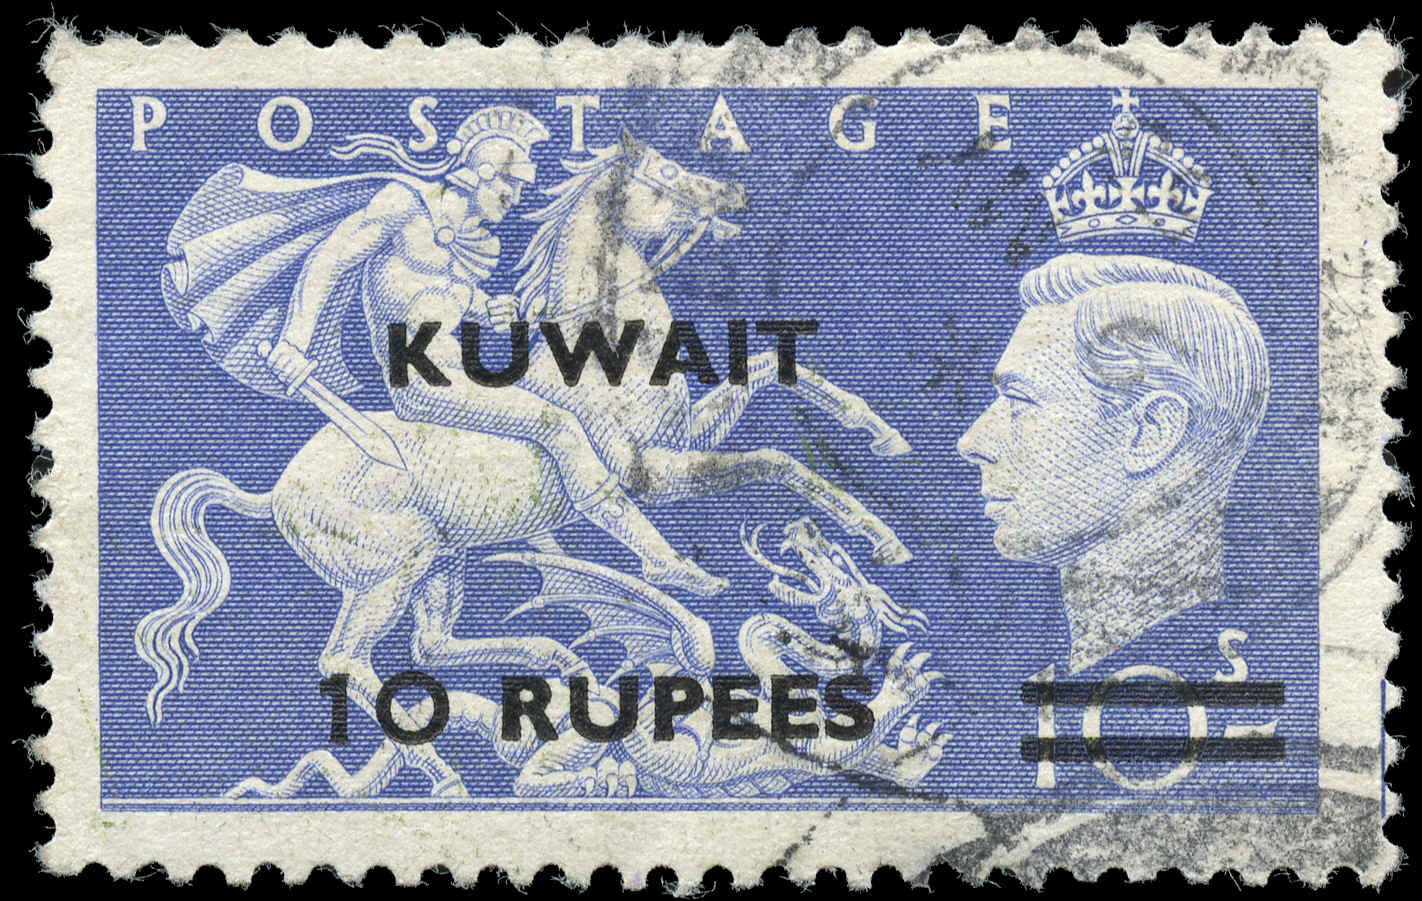 Kuwait, #101, F-VF, Used